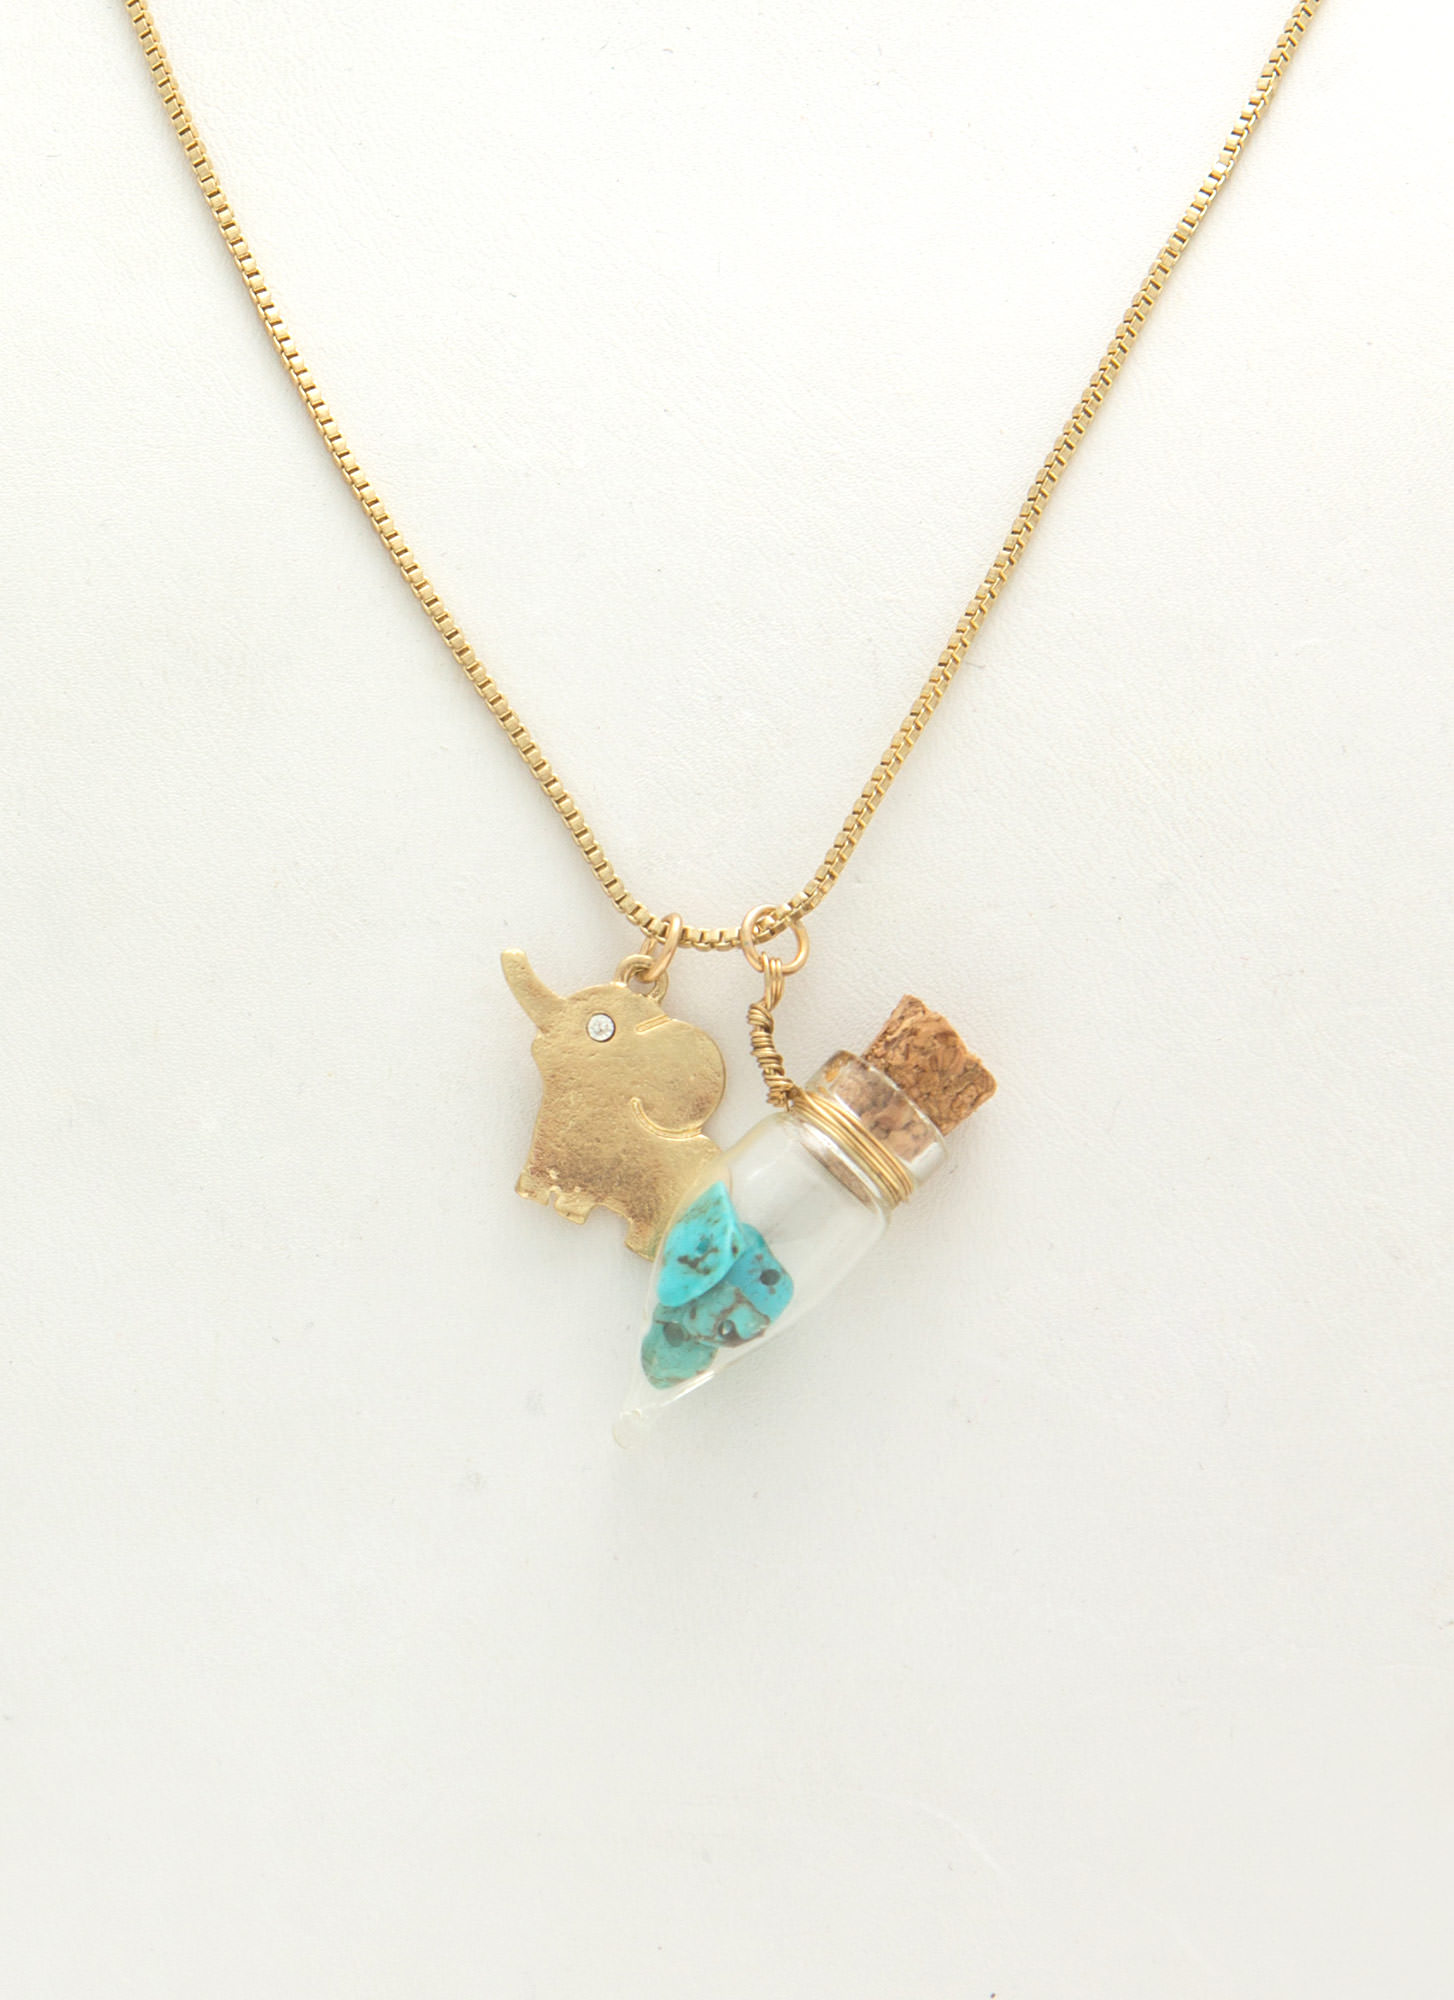 Elephant Charm Capsule Necklace Set GOLDTURQ